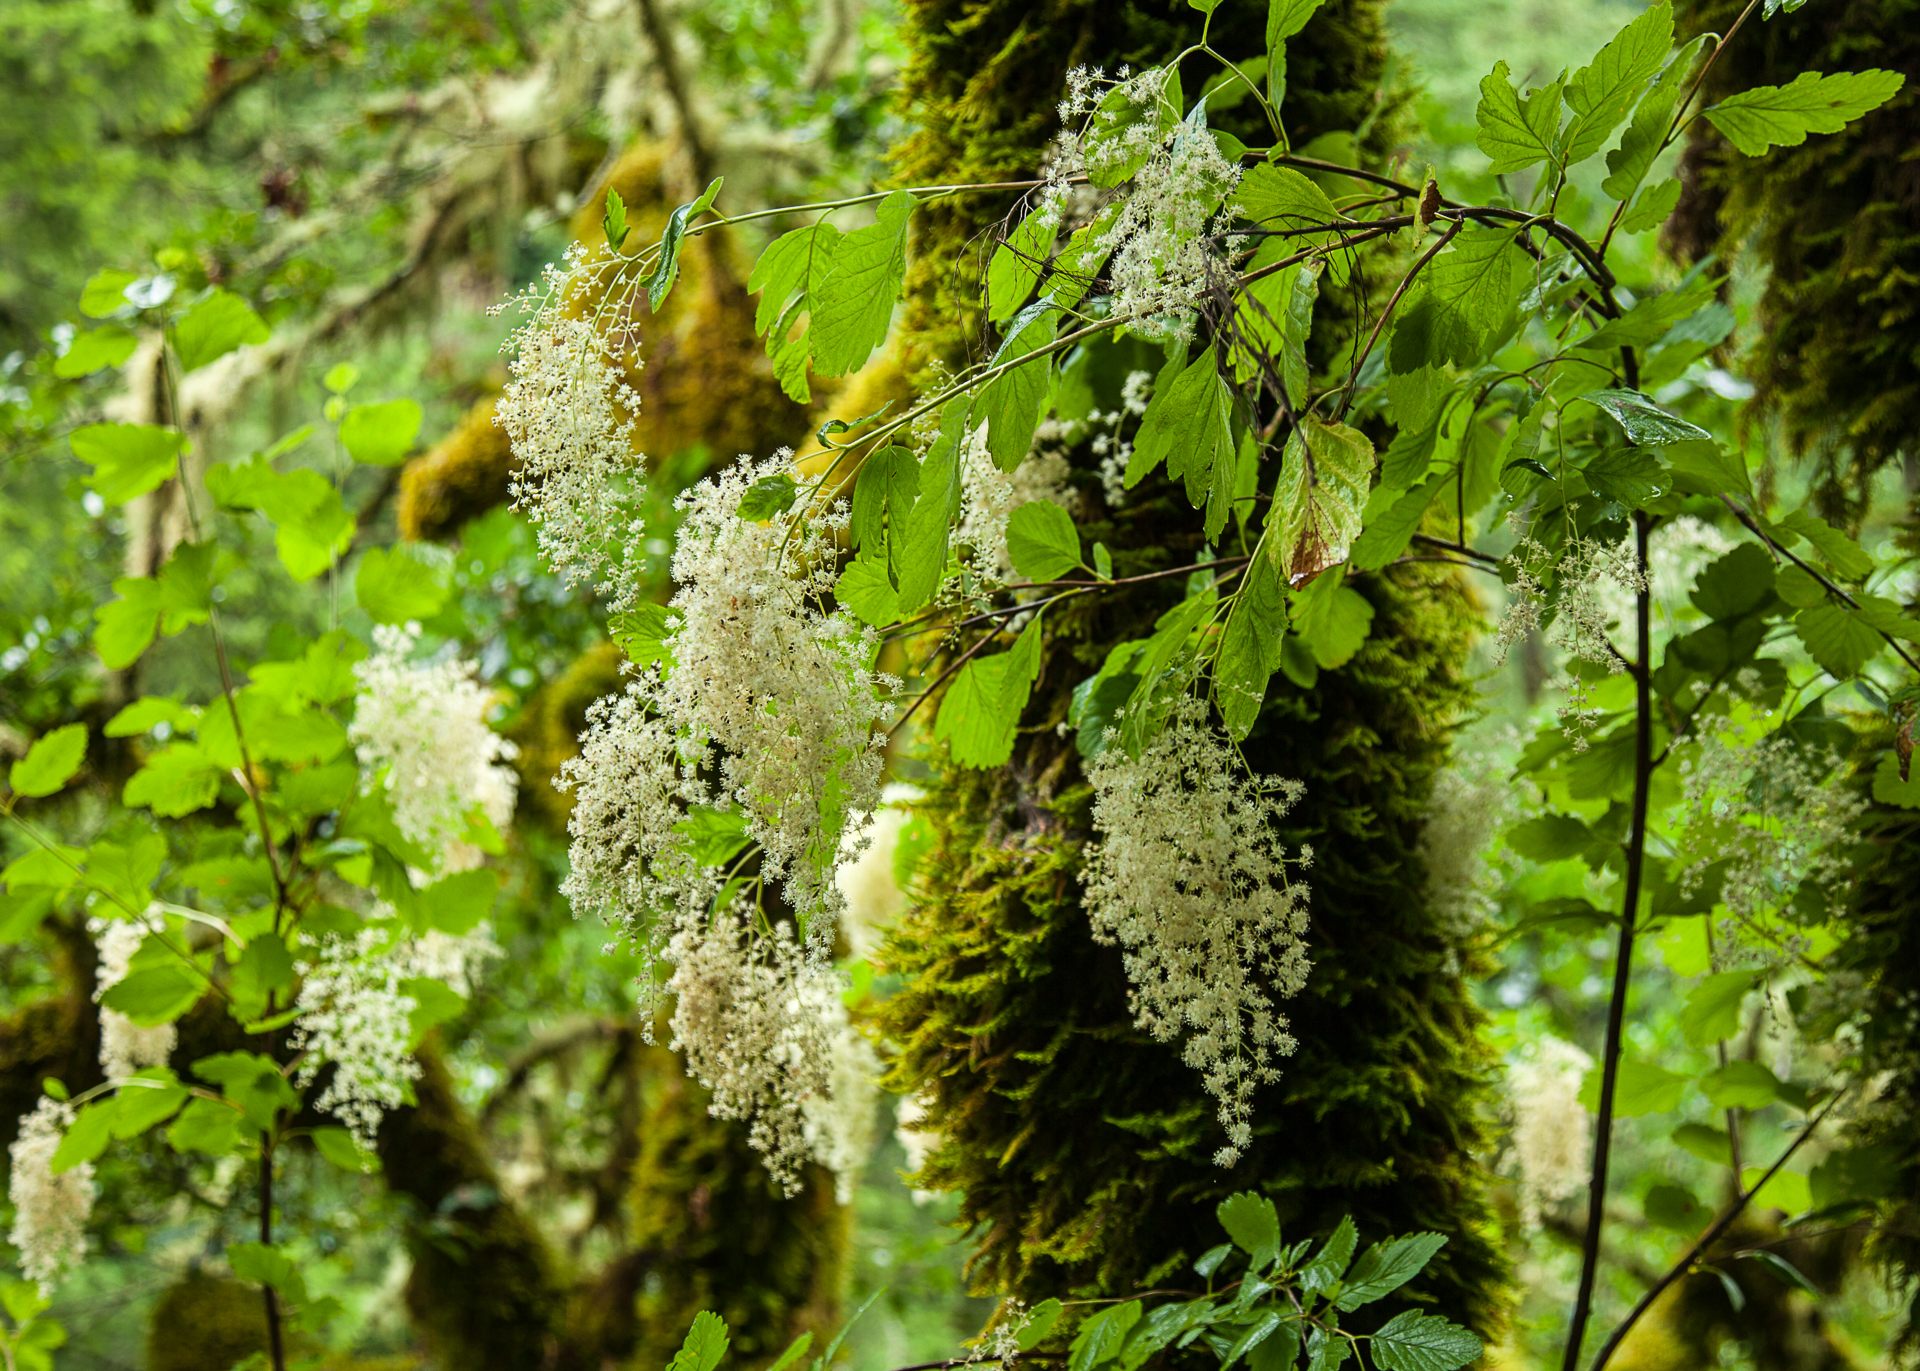 Flowers on the vines that grow on the mossy trees i the undergrowth.